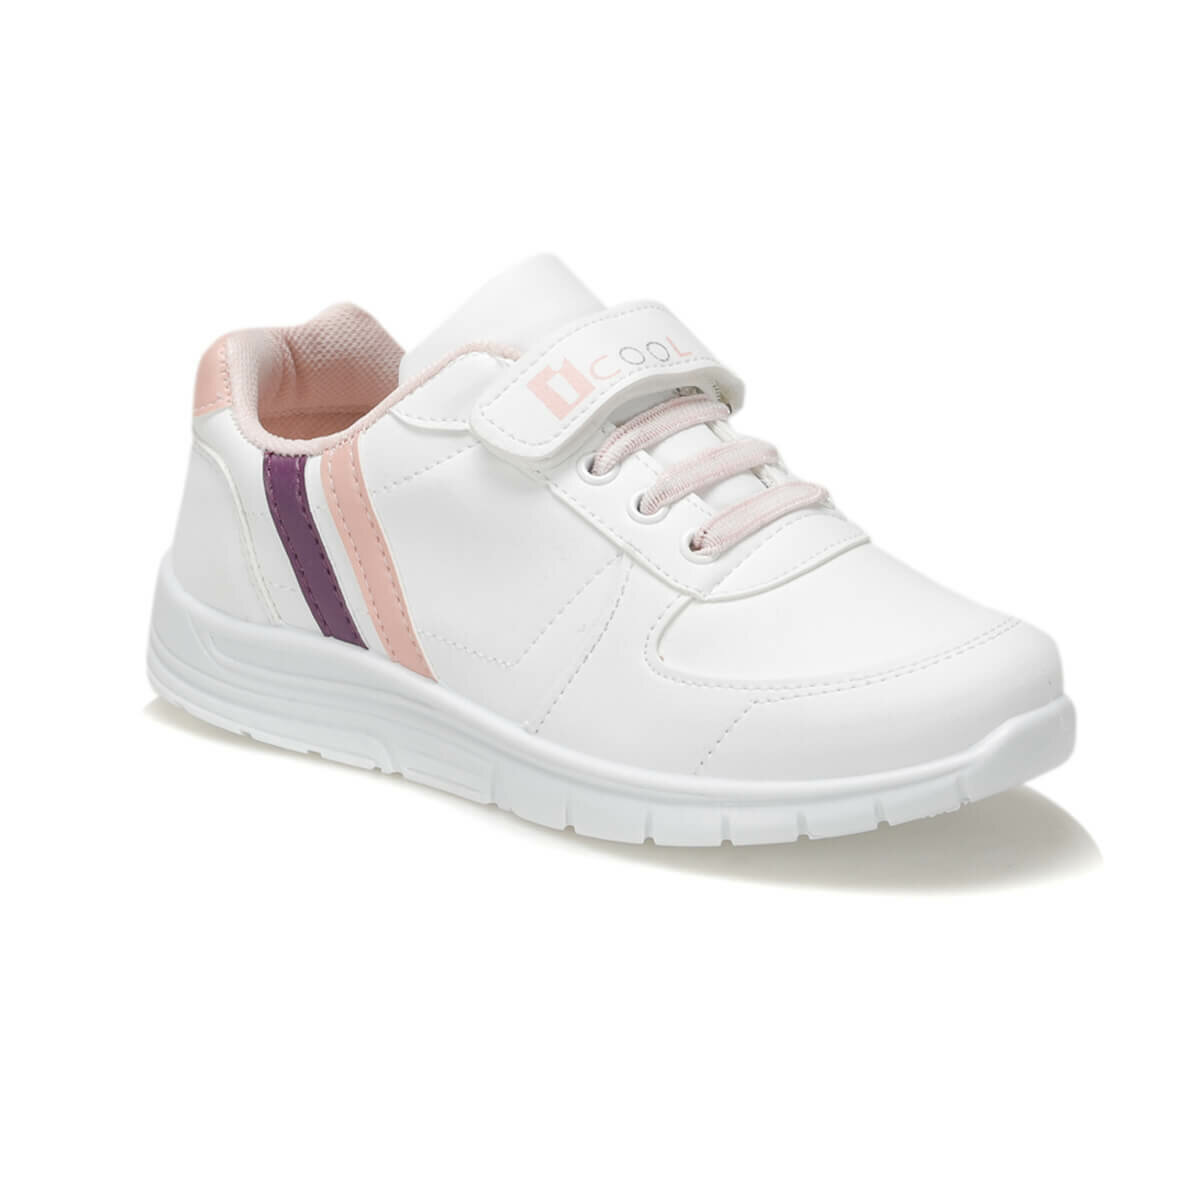 FLO DEMBA White Female Child Sneaker Shoes I-Cool